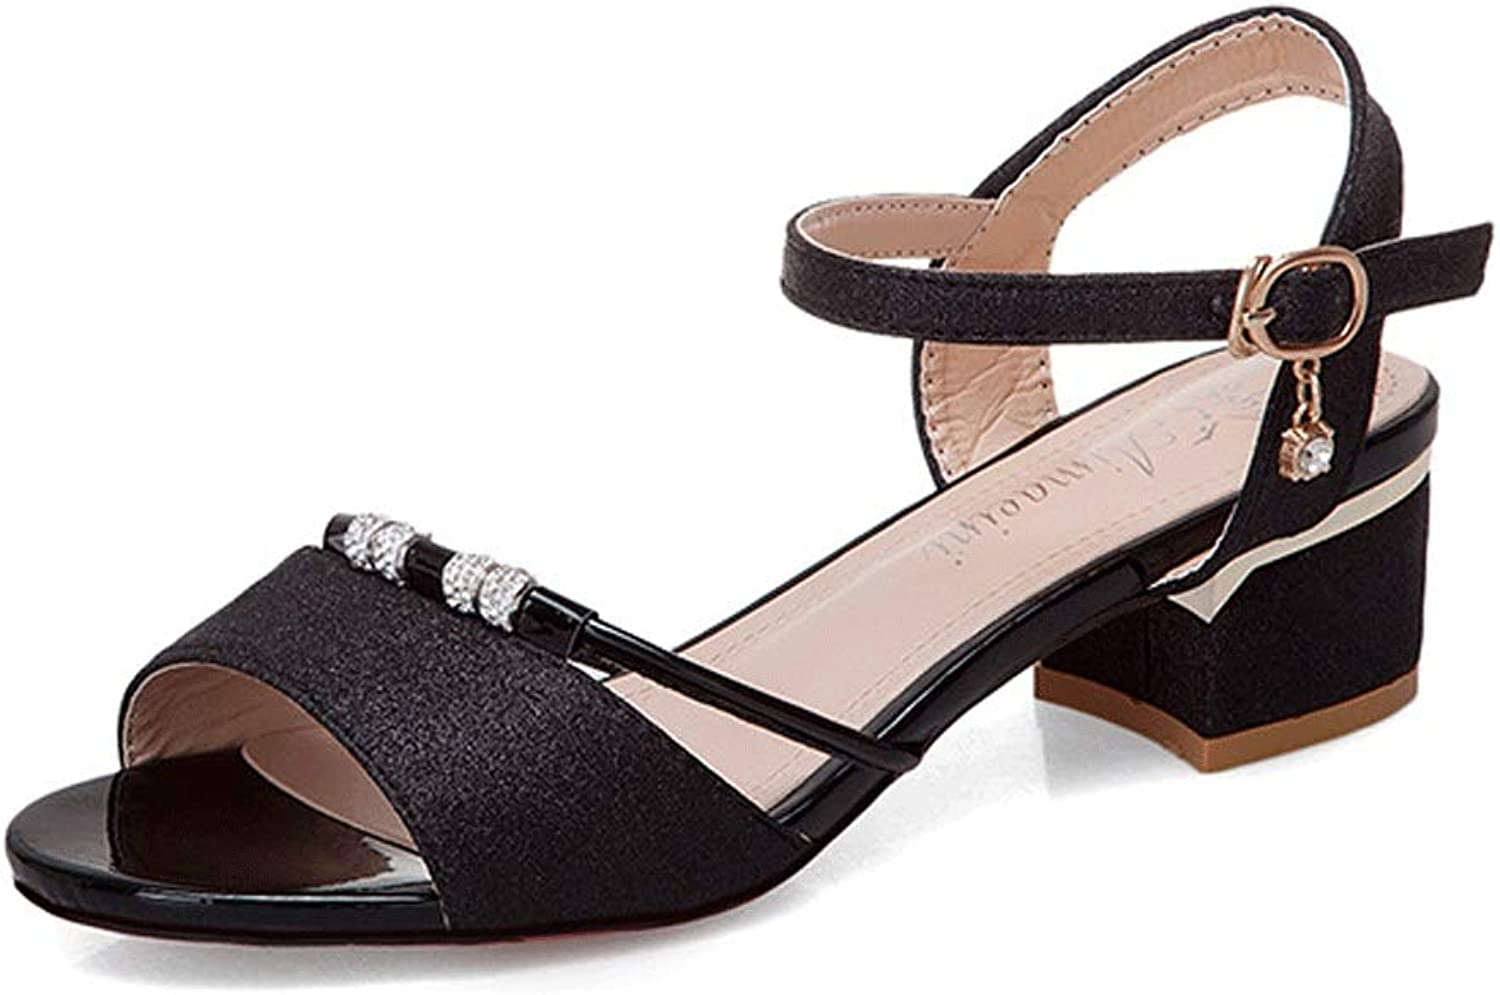 Summer Sandals Women's Breathable High Heel shoes (color   A, Size   7.0 US)